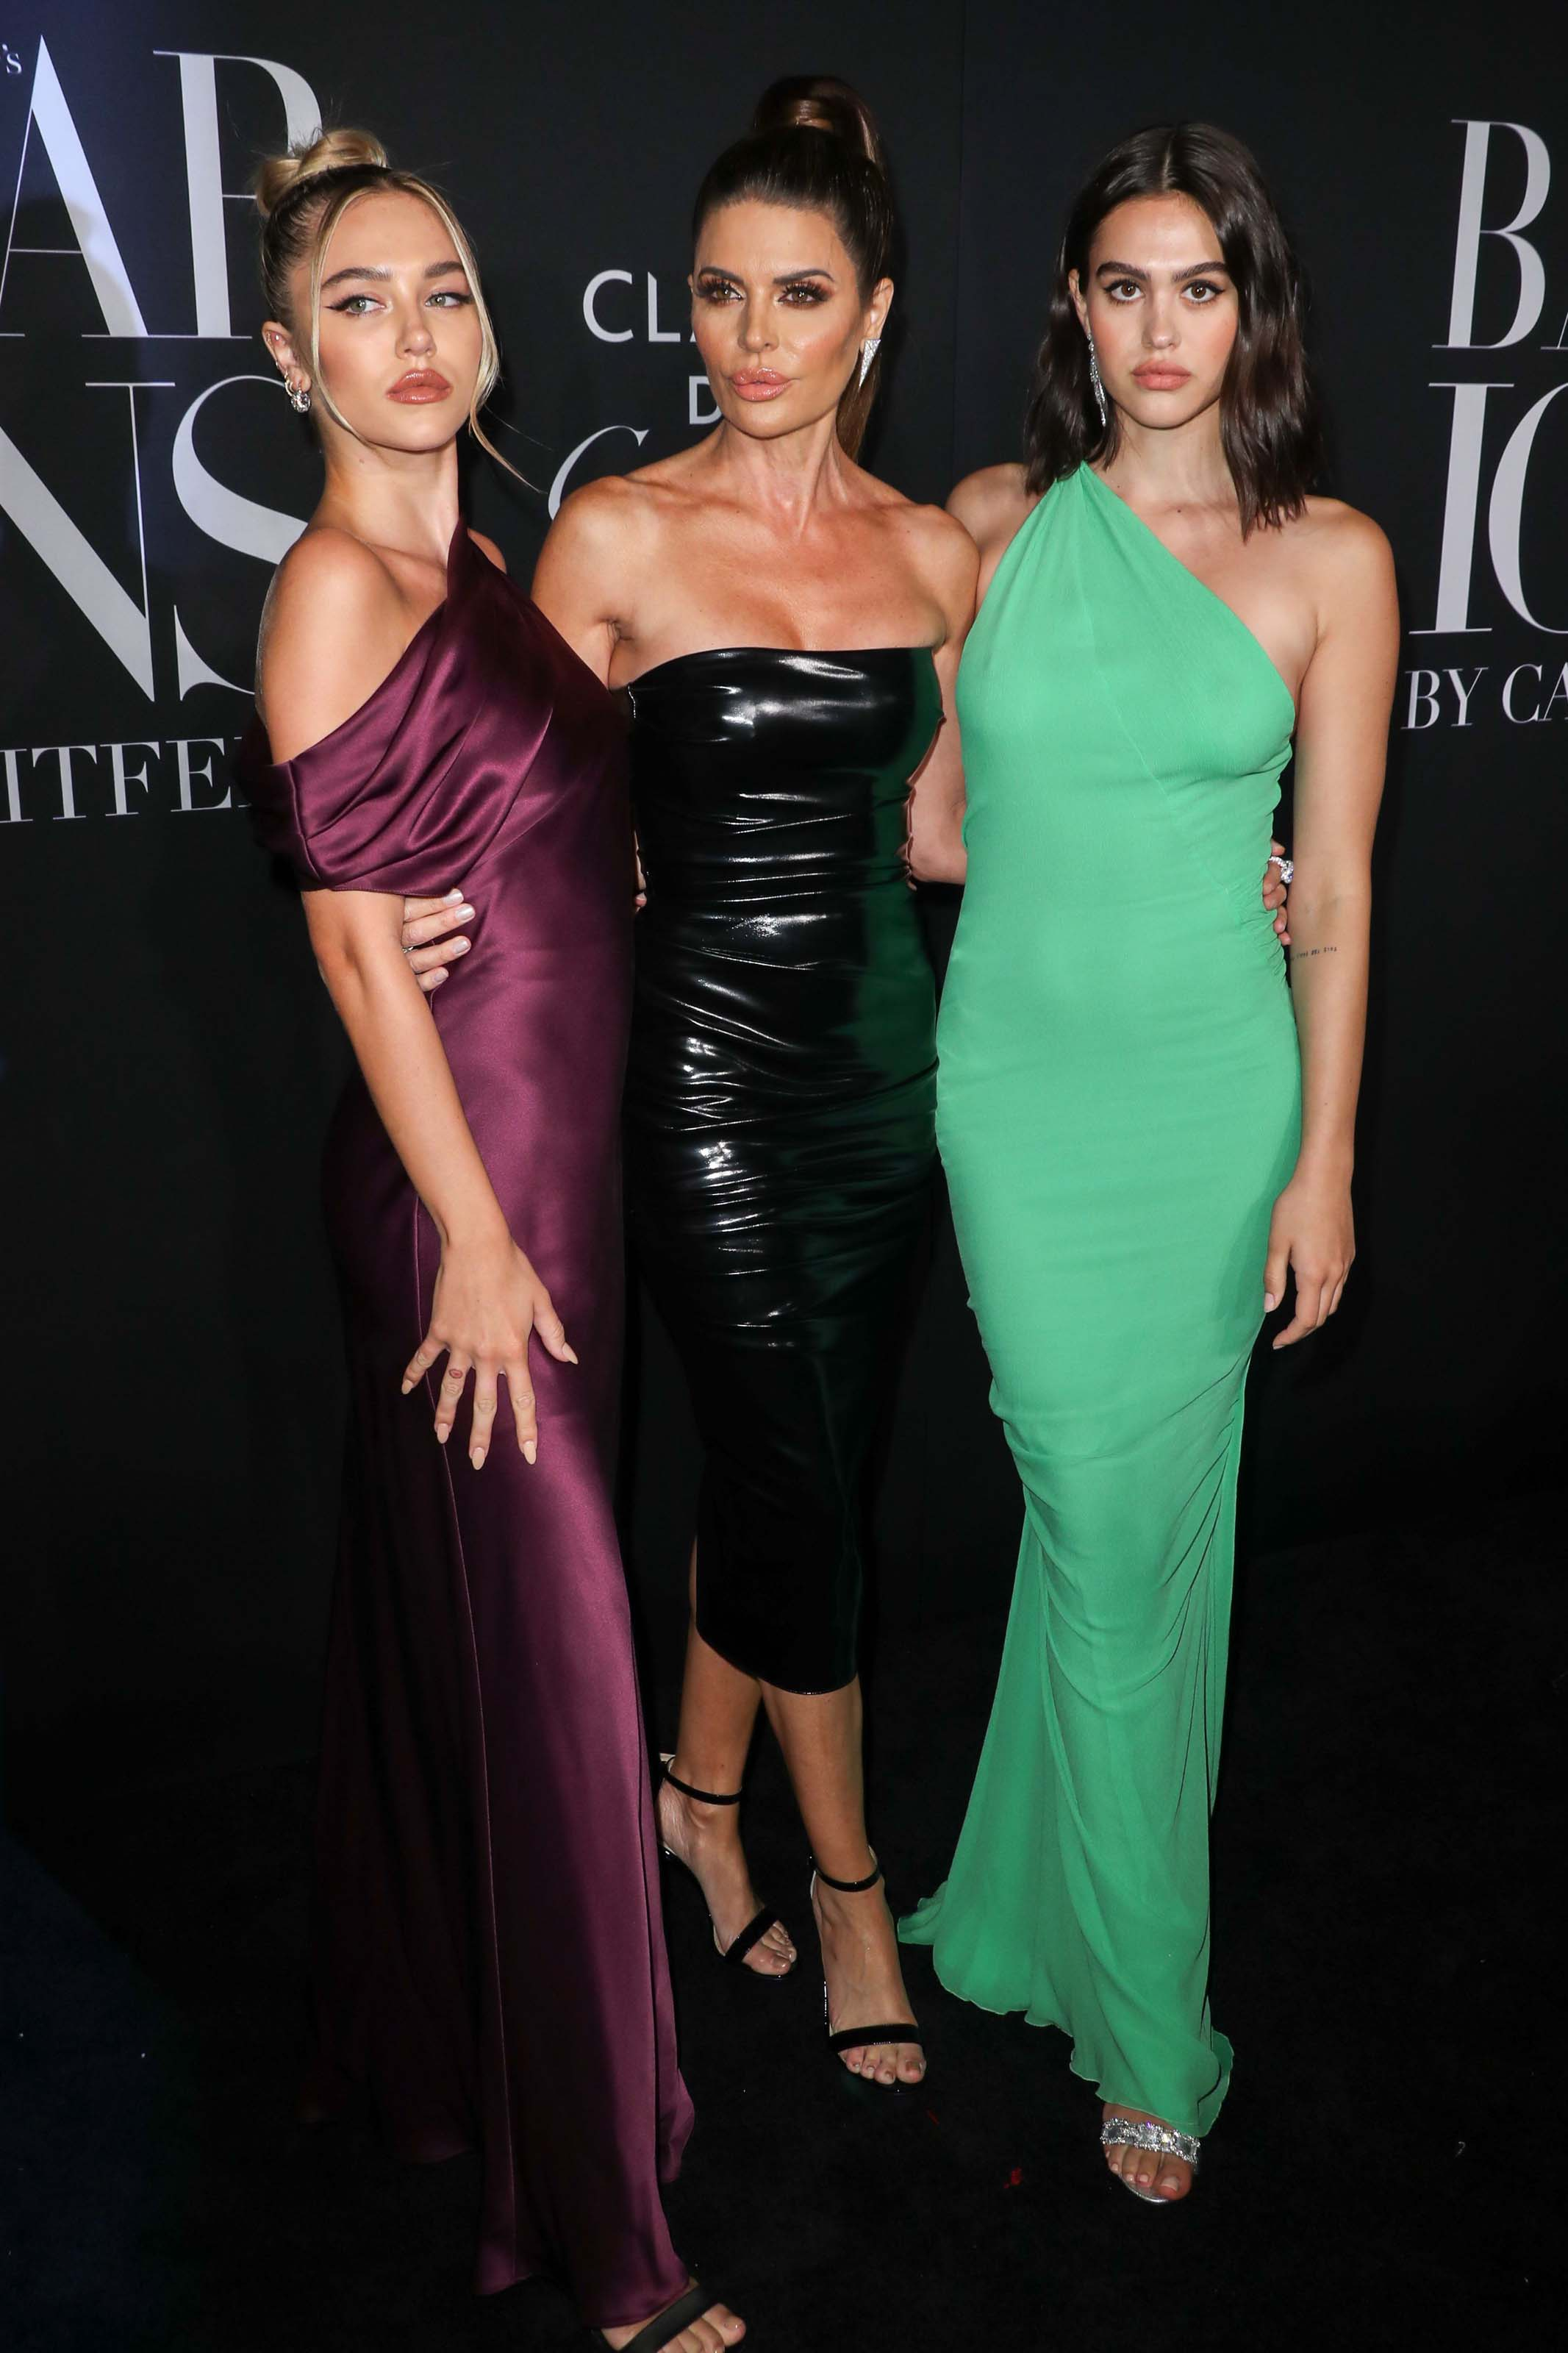 Lisa Rinna attends Harper's Bazaar icons event